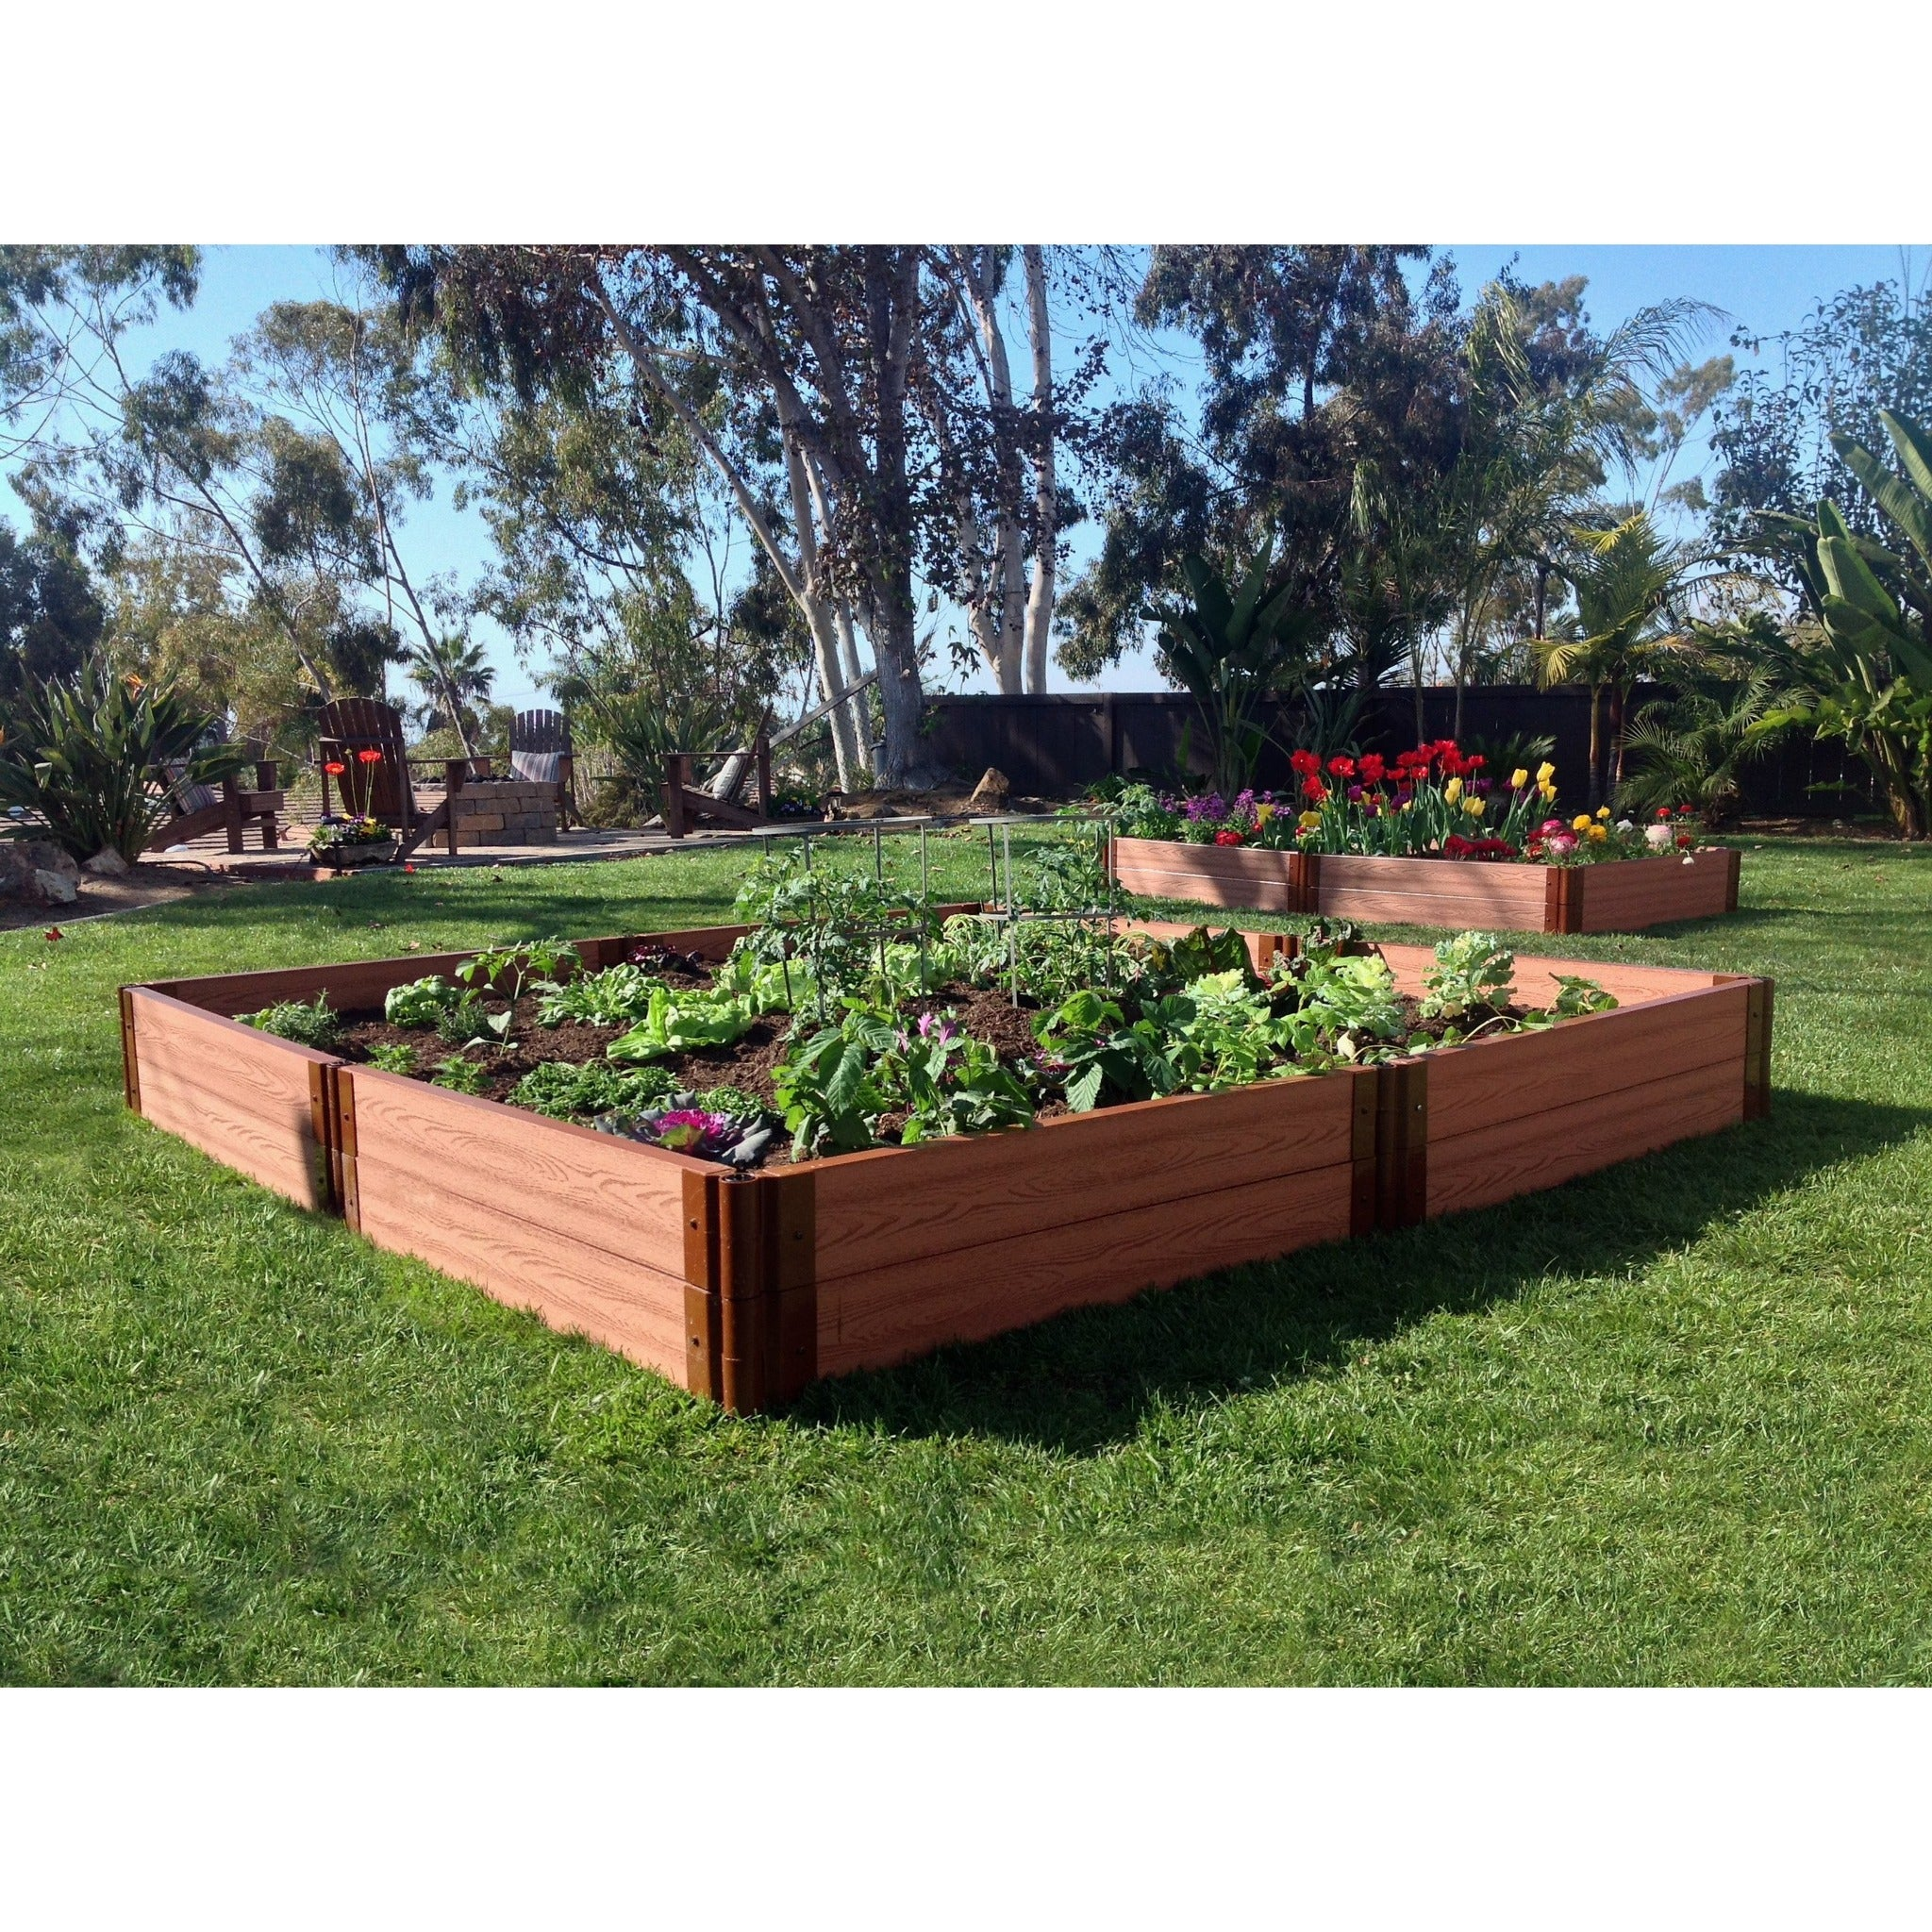 wall beds raised bed depot blocks home comments garden r gardening using planter new